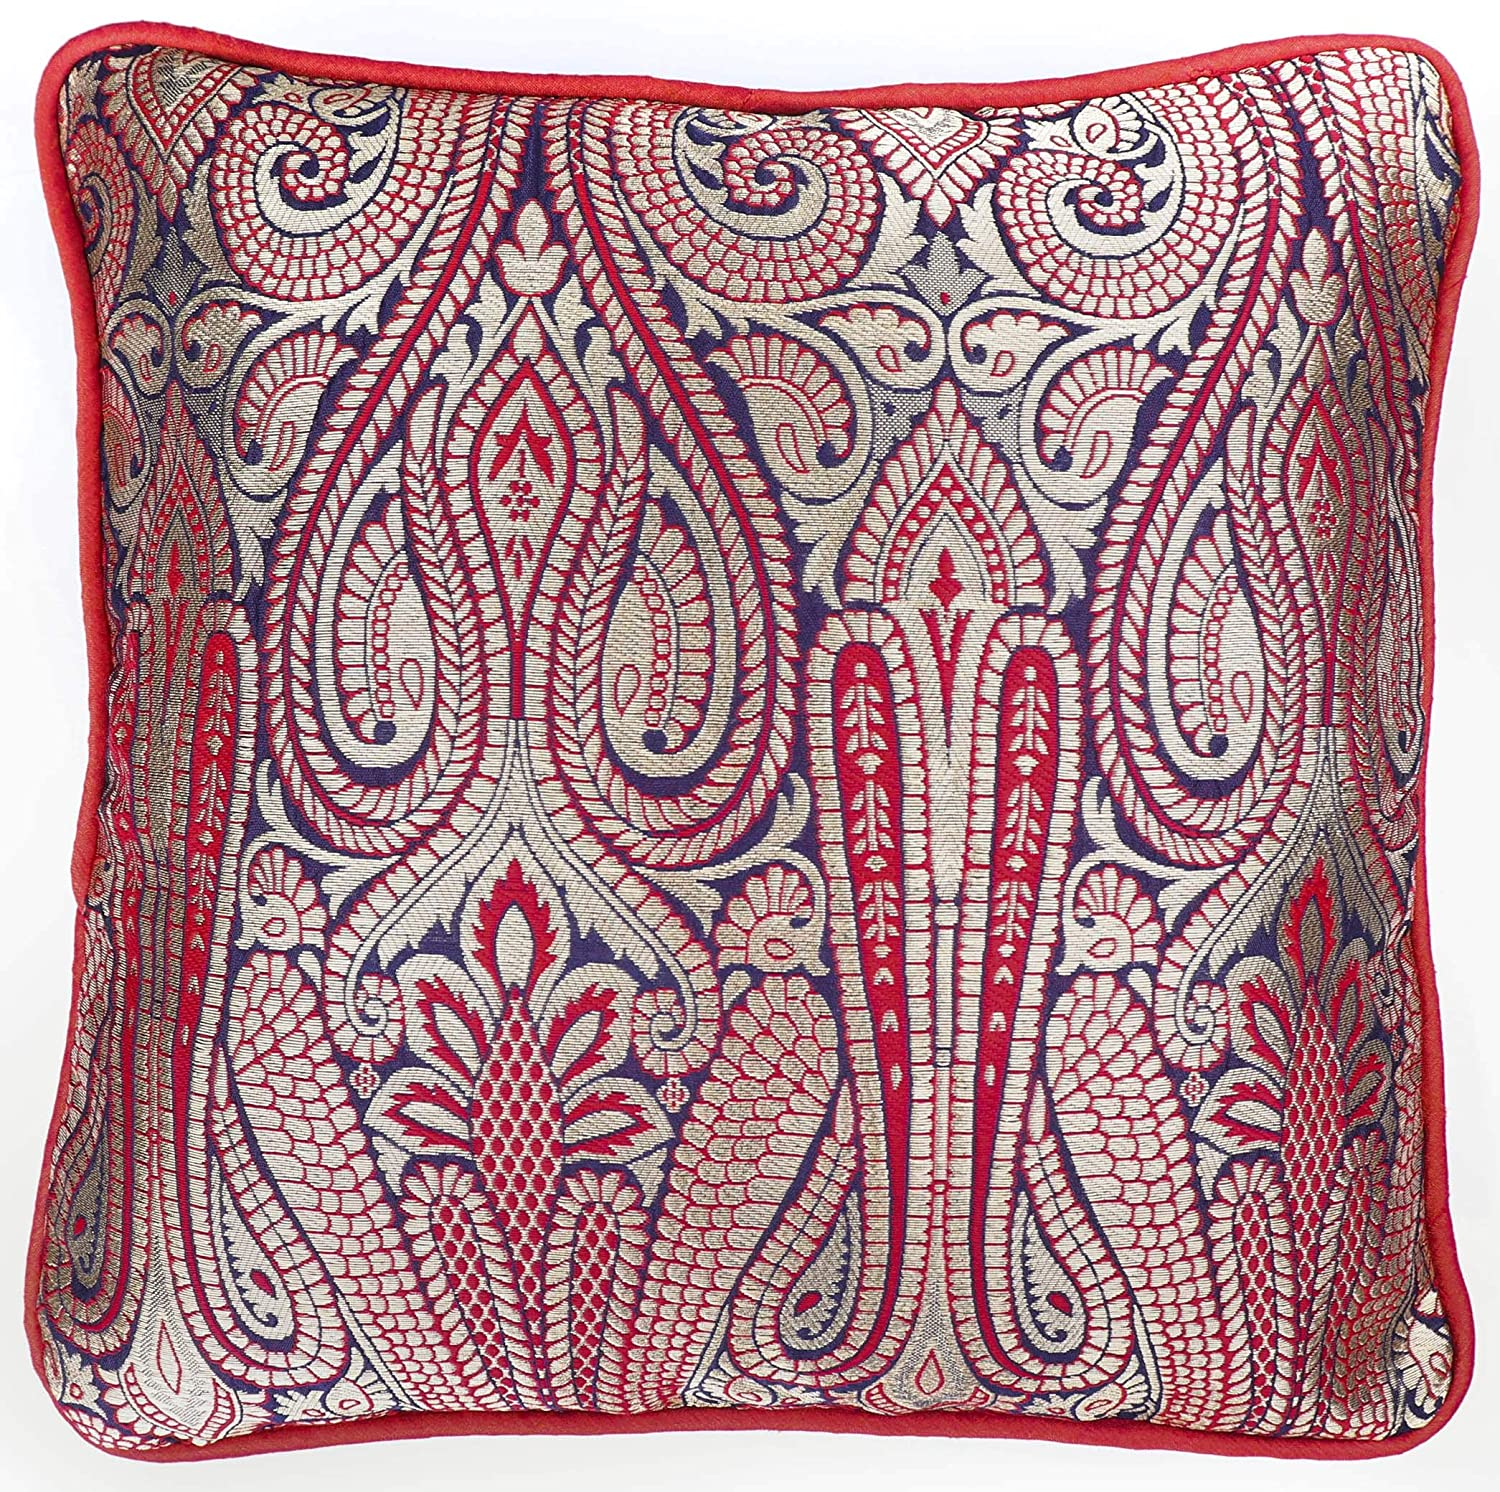 Buy AINOS Red Blue and Gold Brocade Cushion Cover(12 by 12 inches) Online  at Low Prices in India - Amazon.in